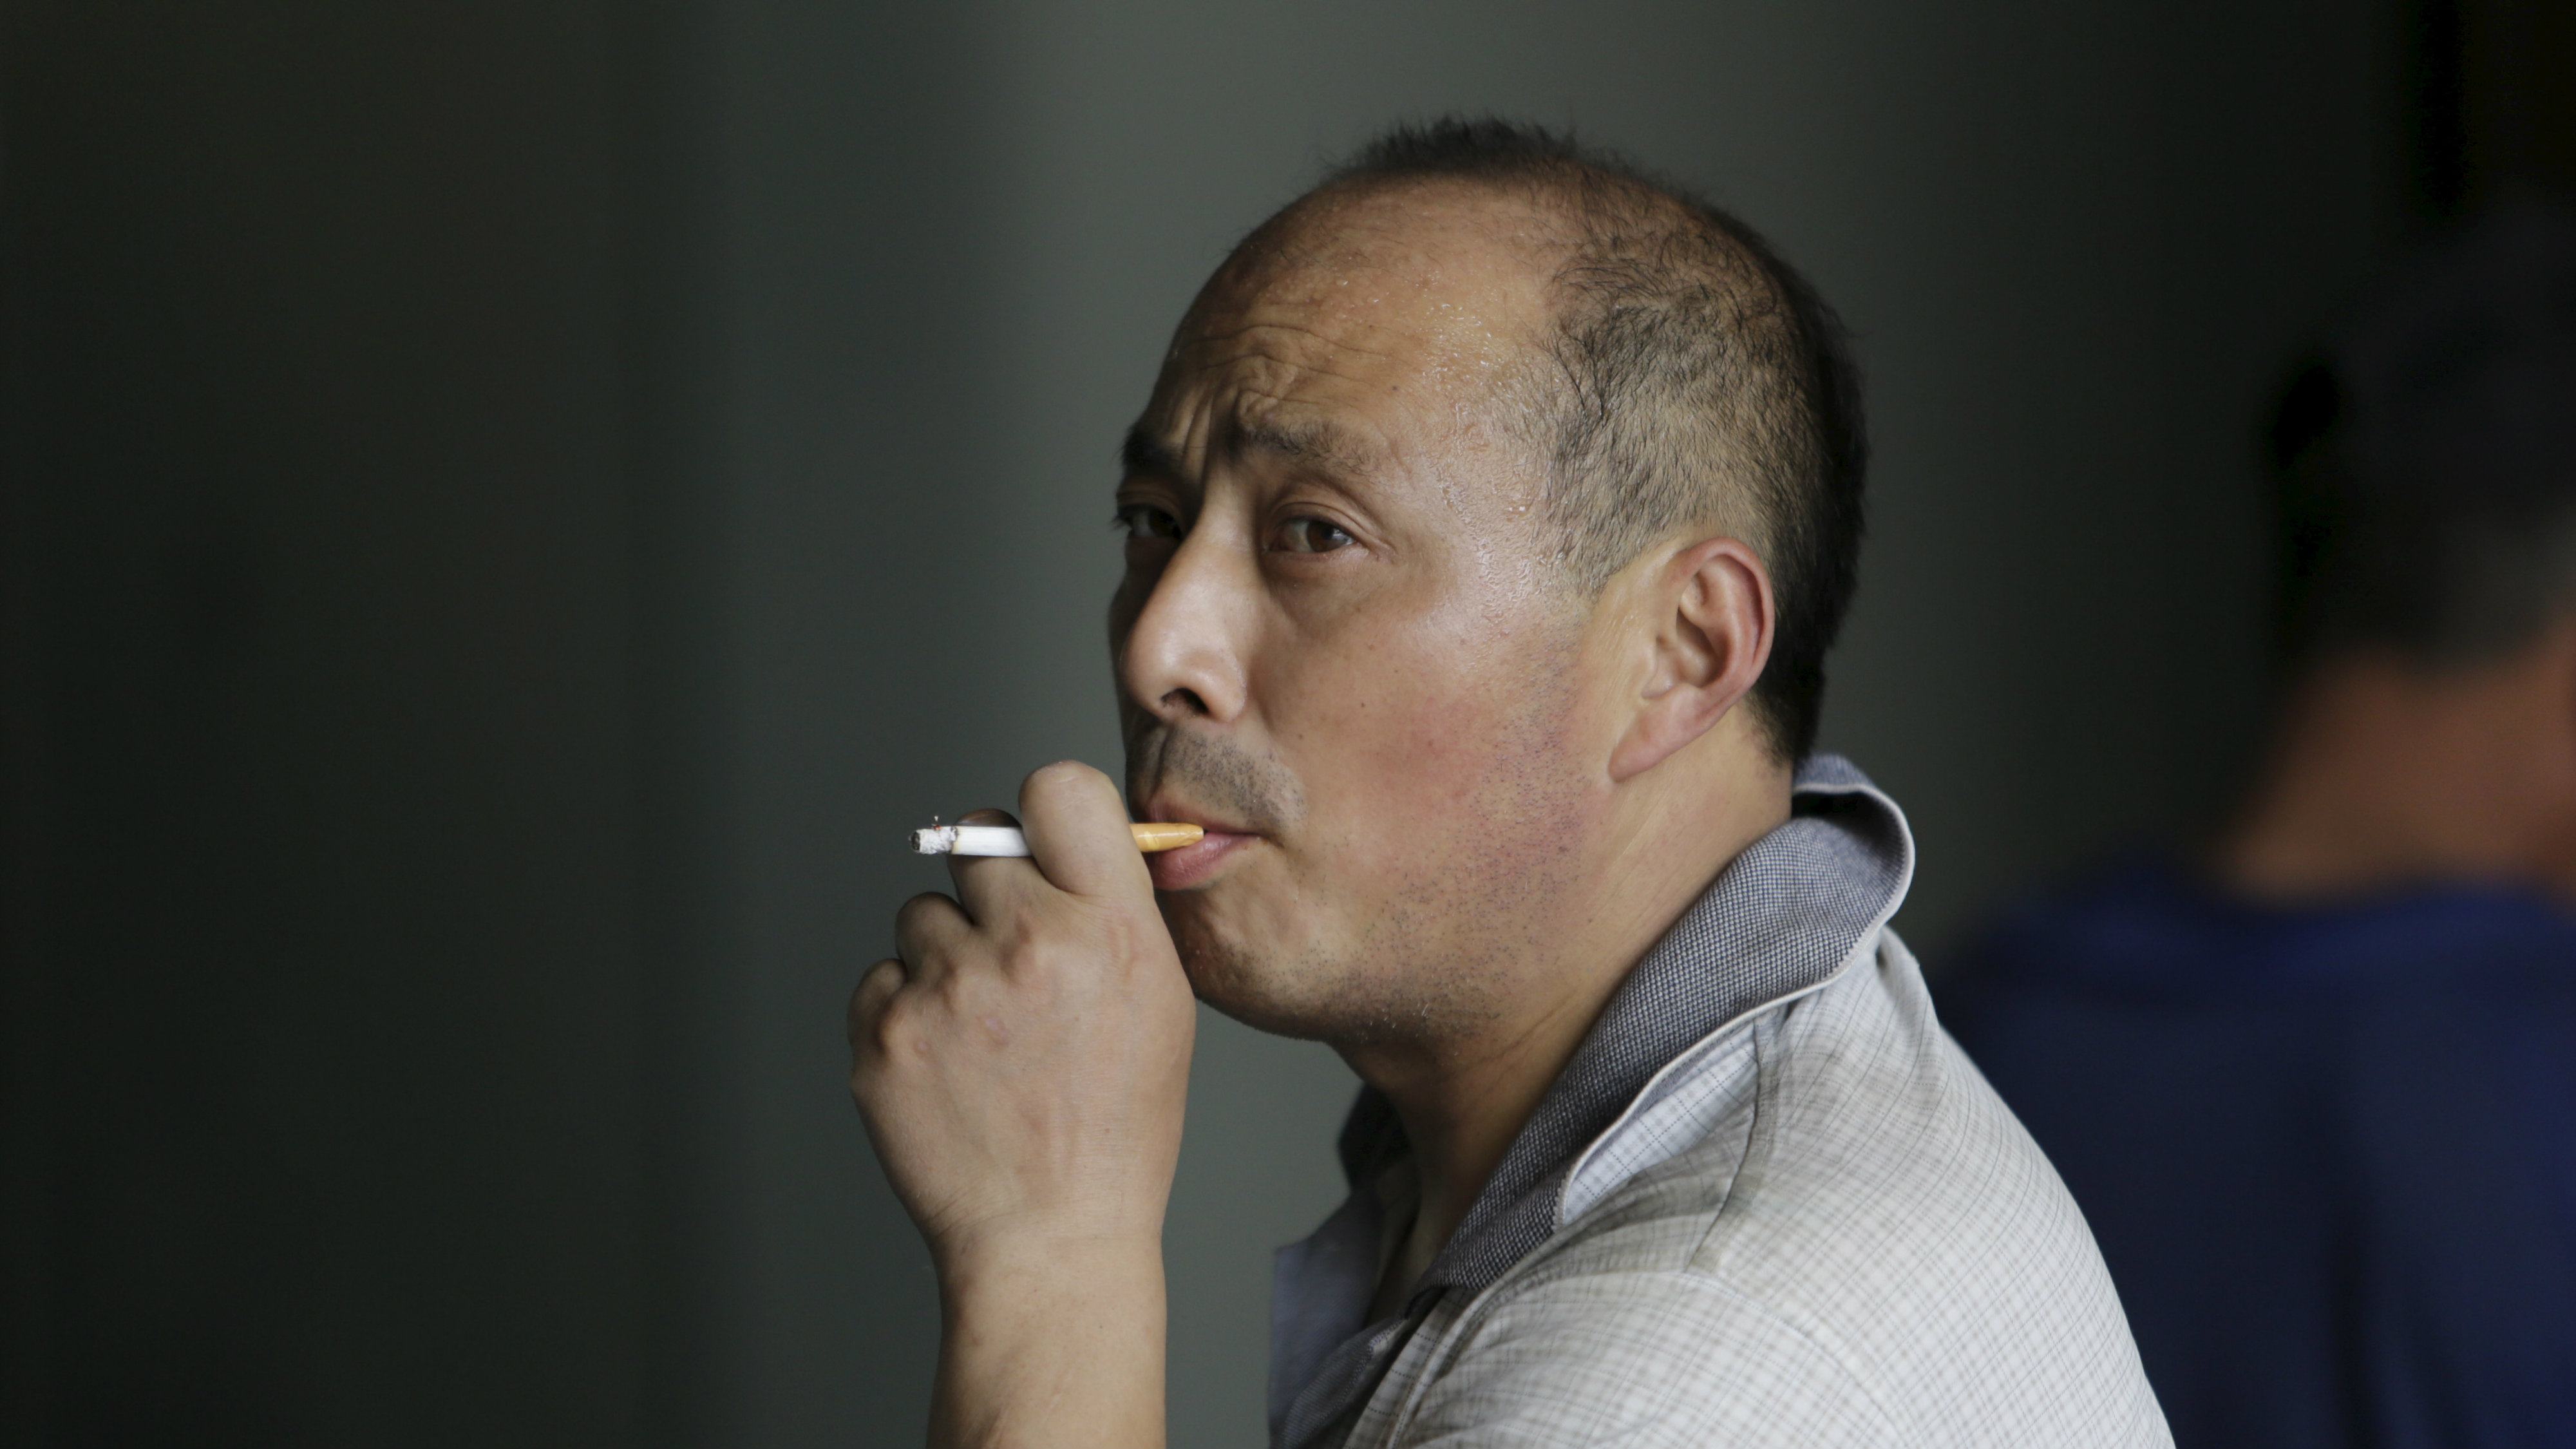 A man smokes a cigarette outside an office building in Beijing.